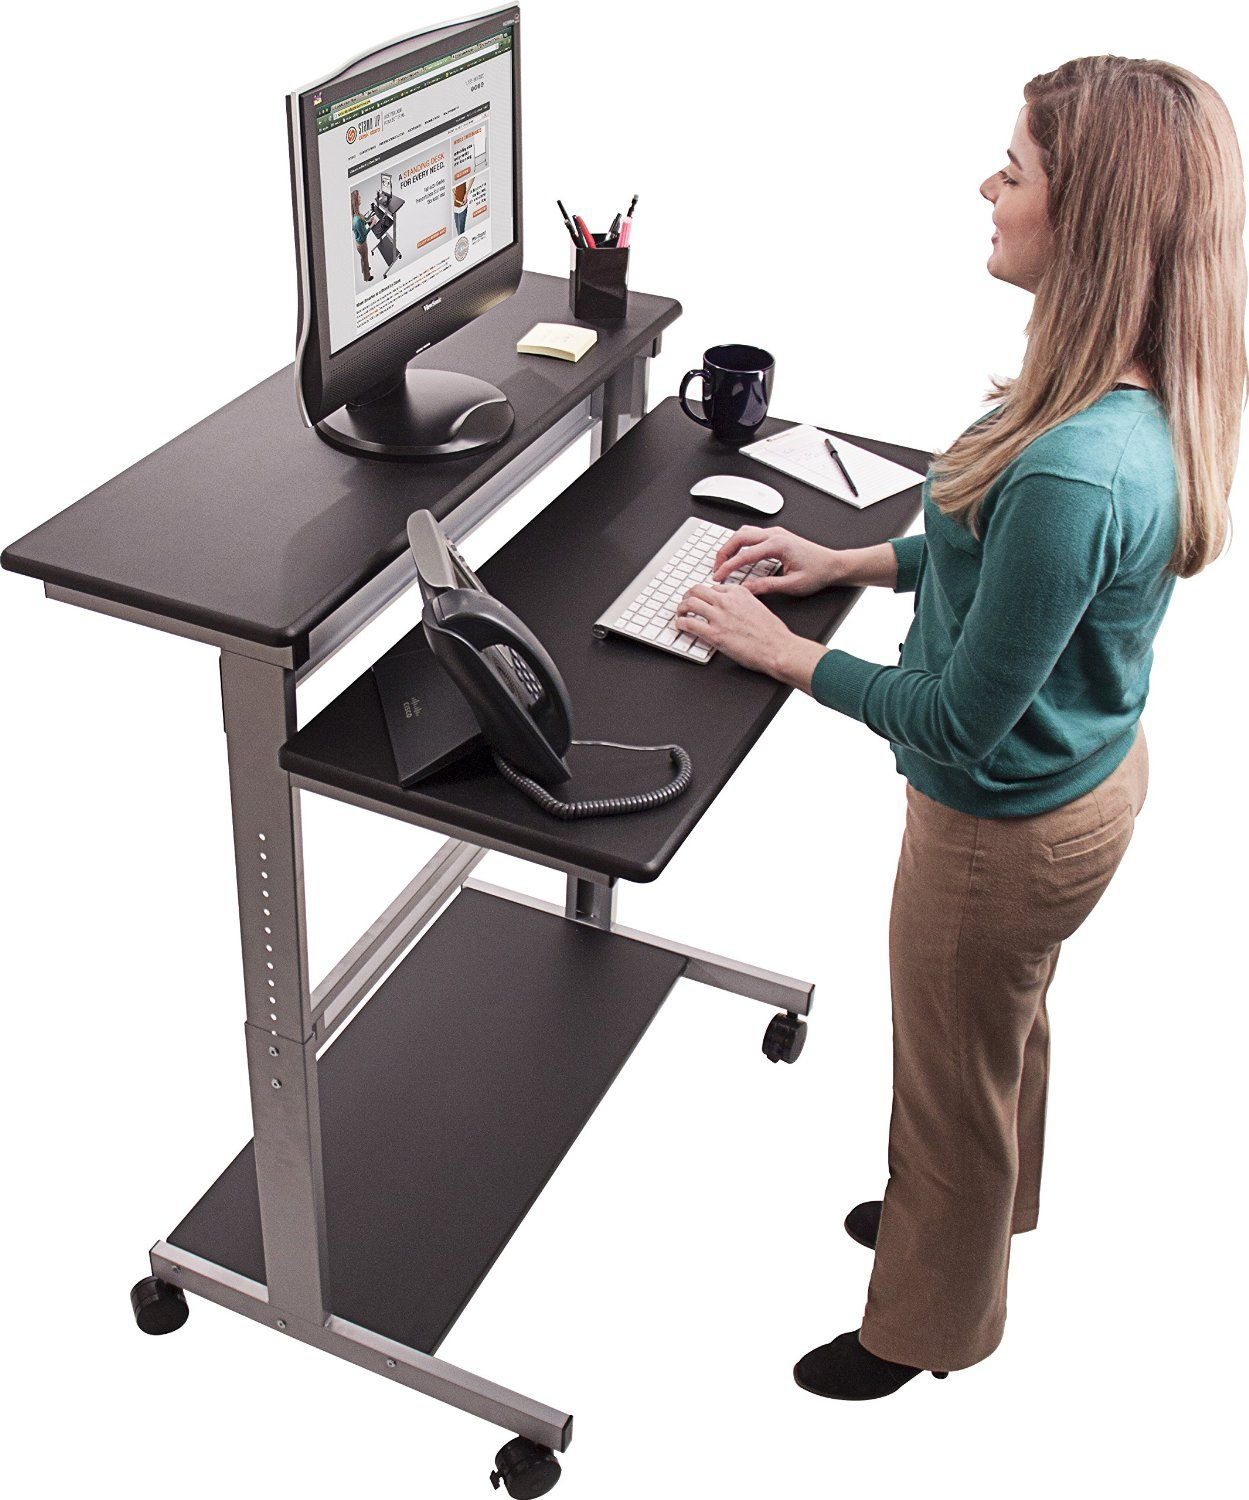 Desk kickstand furniture - Amazon Com 40 Black Shelves Mobile Ergonomic Stand Up Desk Computer Workstation